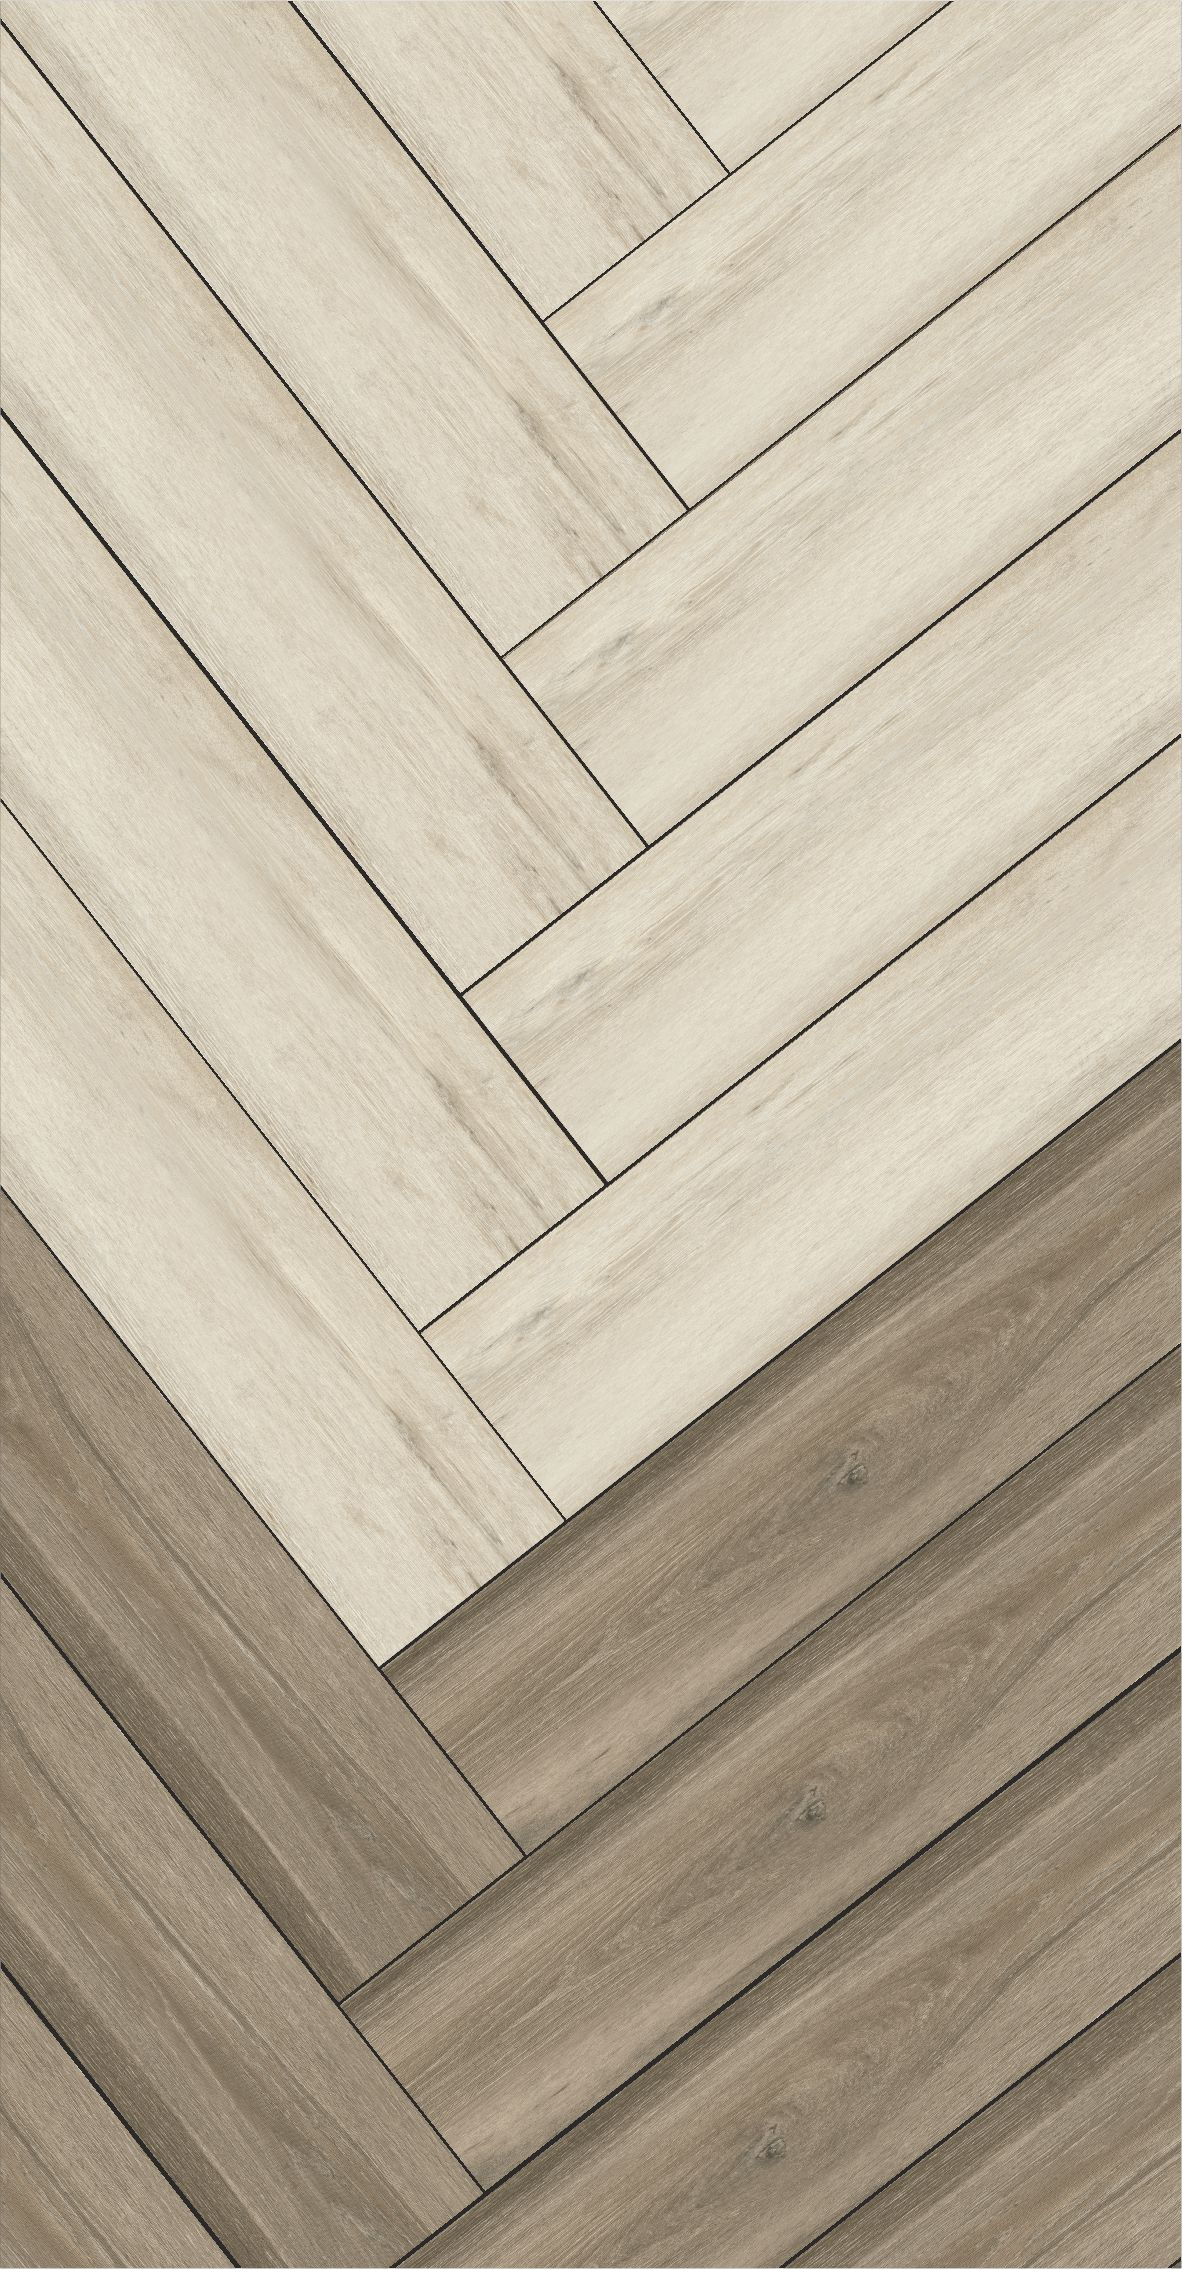 WOODMOTION XL CASONA GRIS& BLANCO (CIFRE)